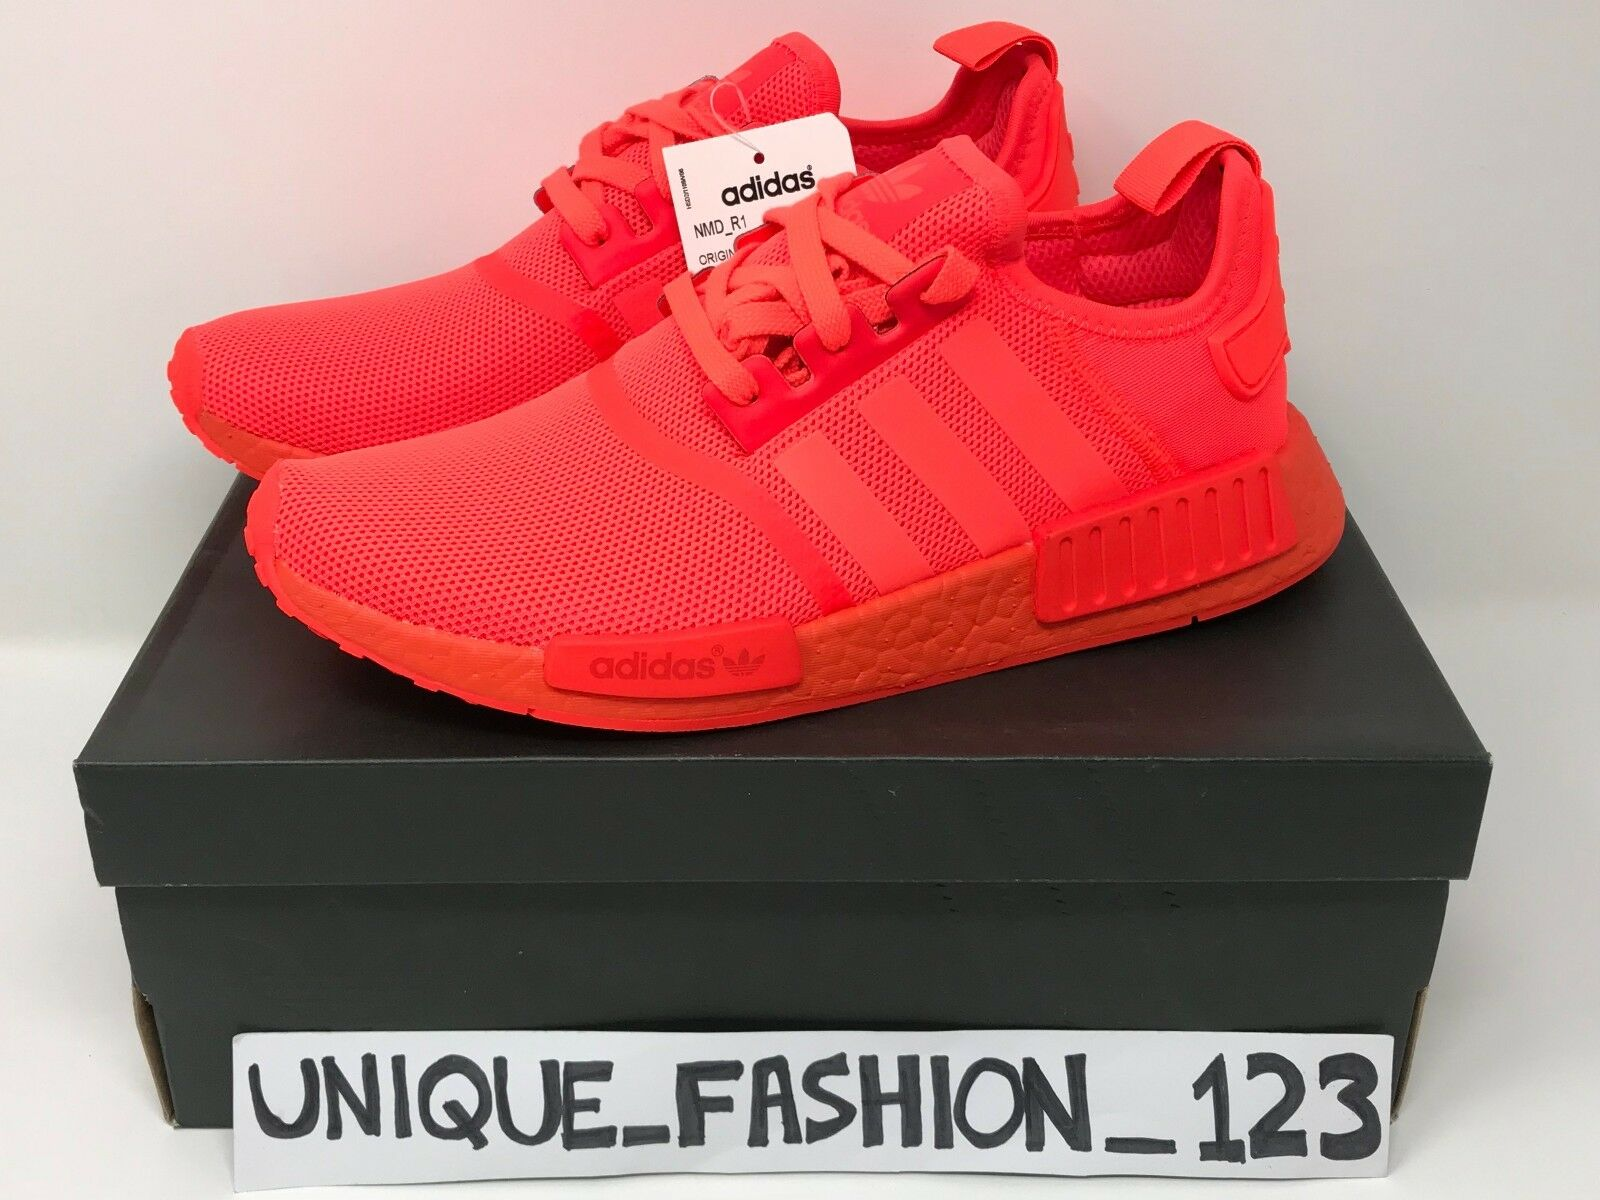 ADIDAS NMD R1 TRIPLE SOLAR RED MESH S31507 LIMITED EDITION 2016